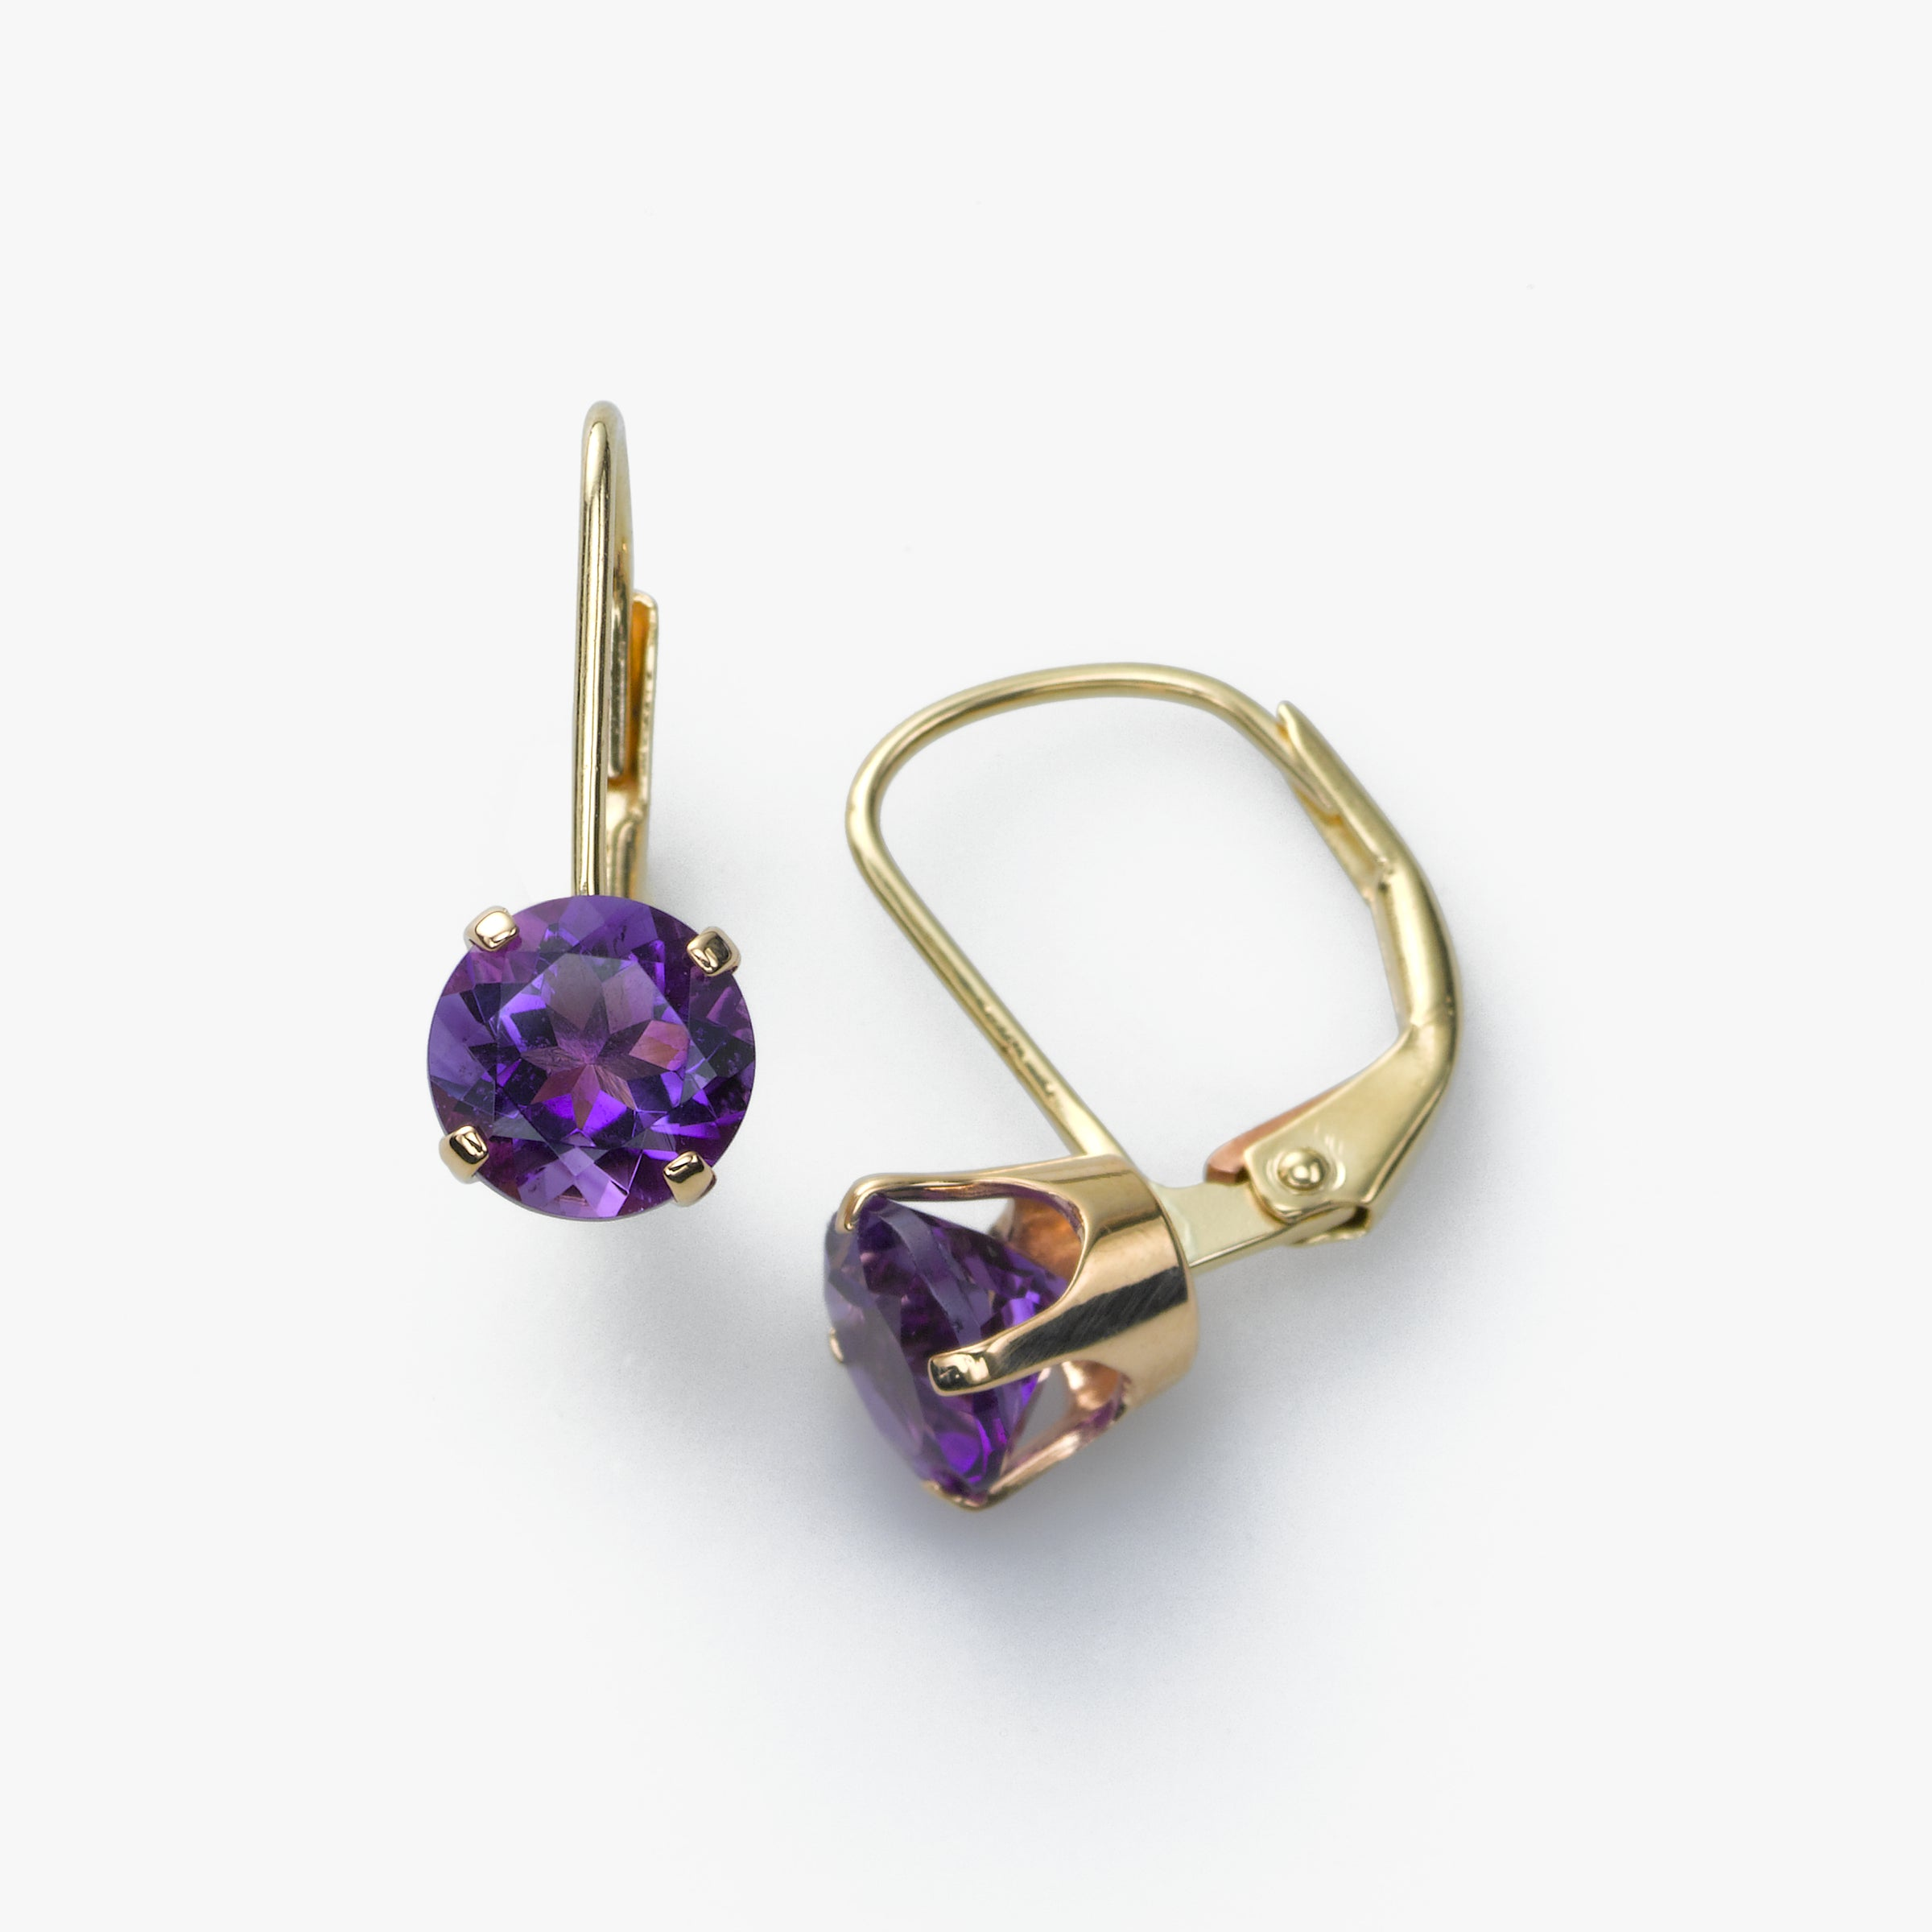 Amethyst Leverback Earring, 14K Yellow Gold